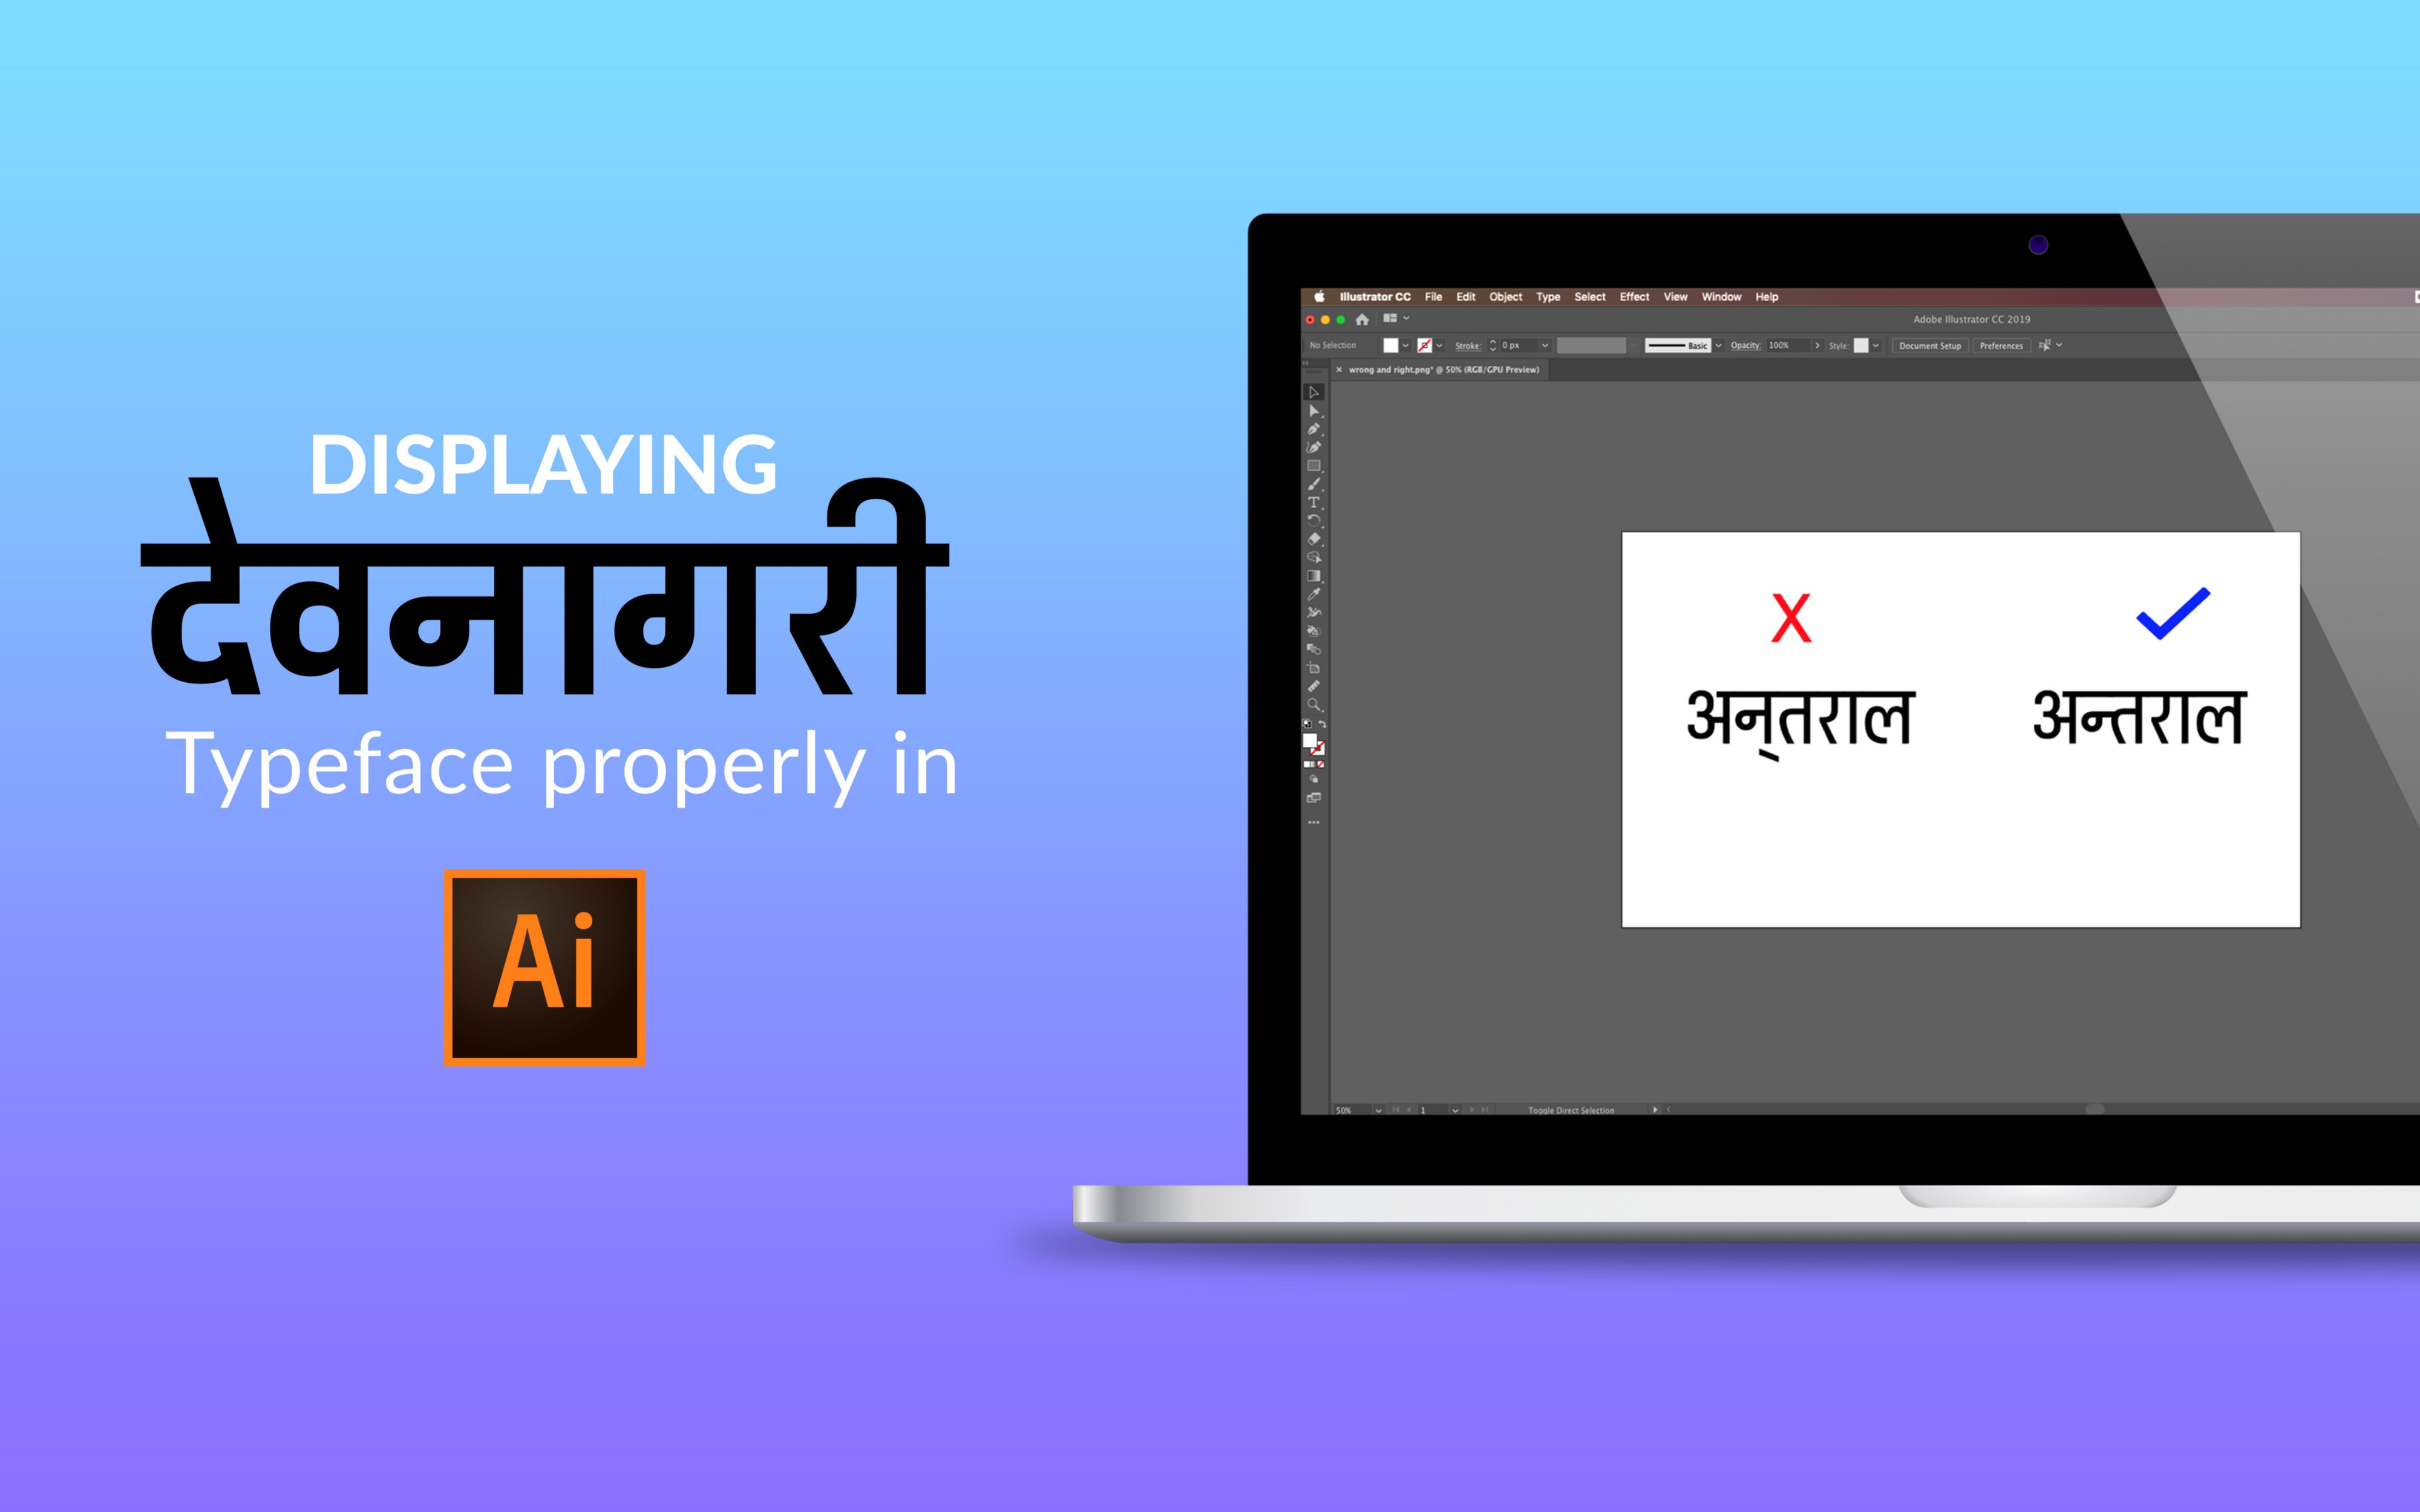 How to configure Adobe Illustrator to display Devanagari